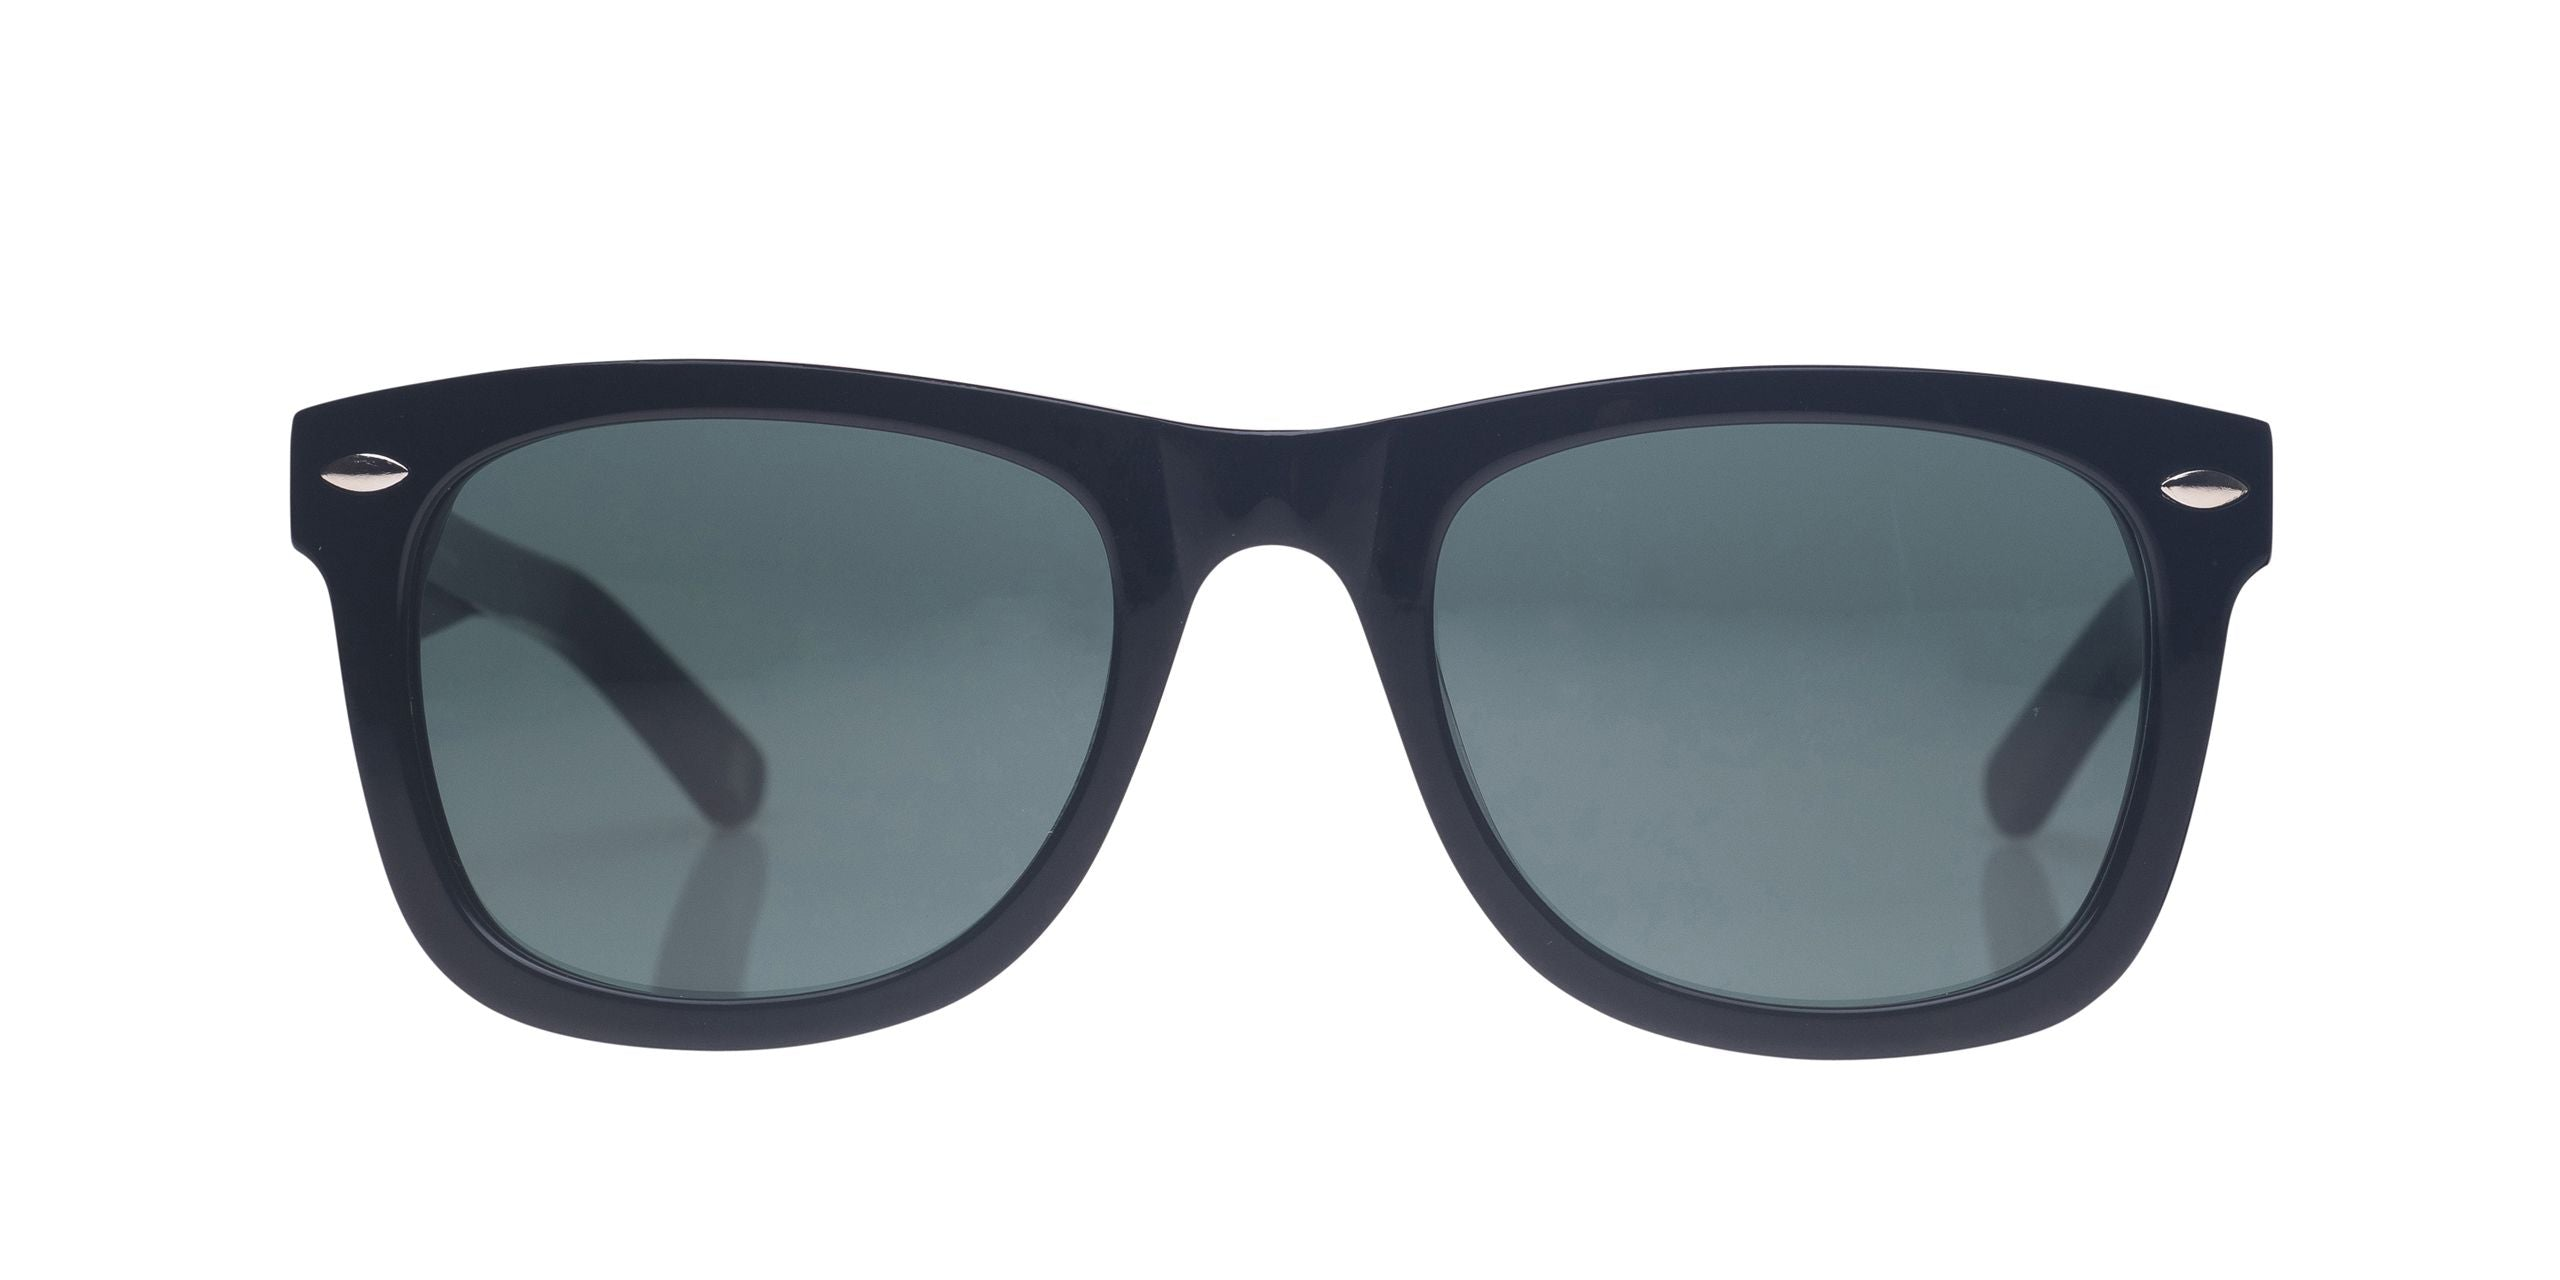 FRAME Black LENS G15 Green